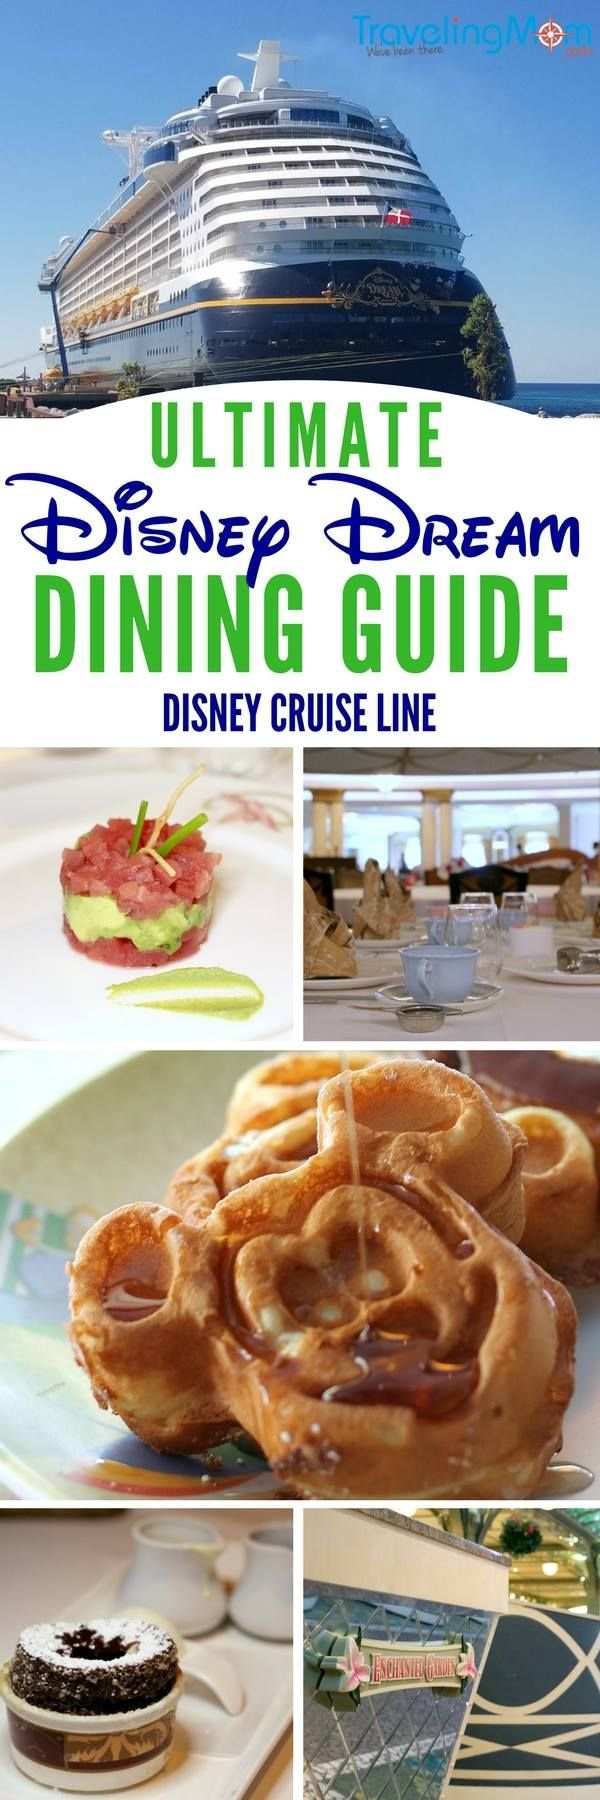 Planning a Disney Cruise Line vacation aboard the Disney Dream? Find out everything you need to know about Disney Dream restaurants and food in this Disney Dream dining guide. #disneycruiseline #DCL #disneydream #tmomdisney (sponsored)